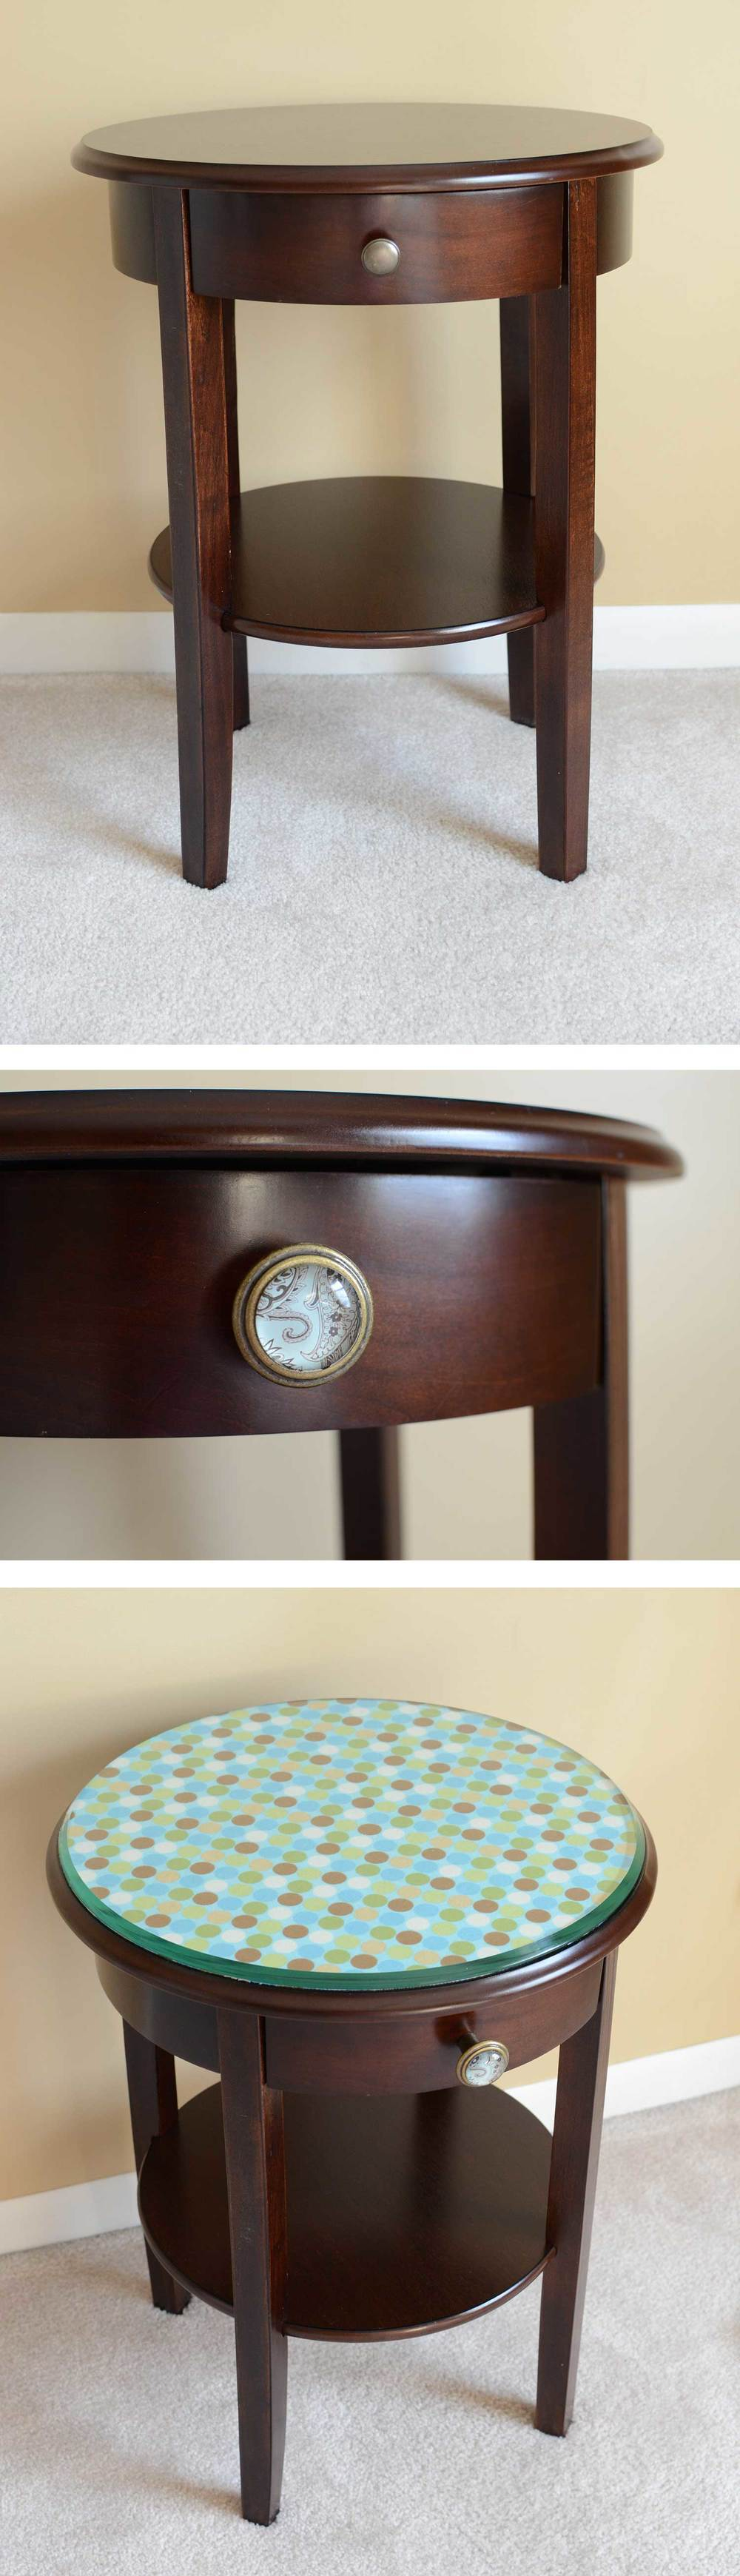 quickly-change-look-side-tables.jpg